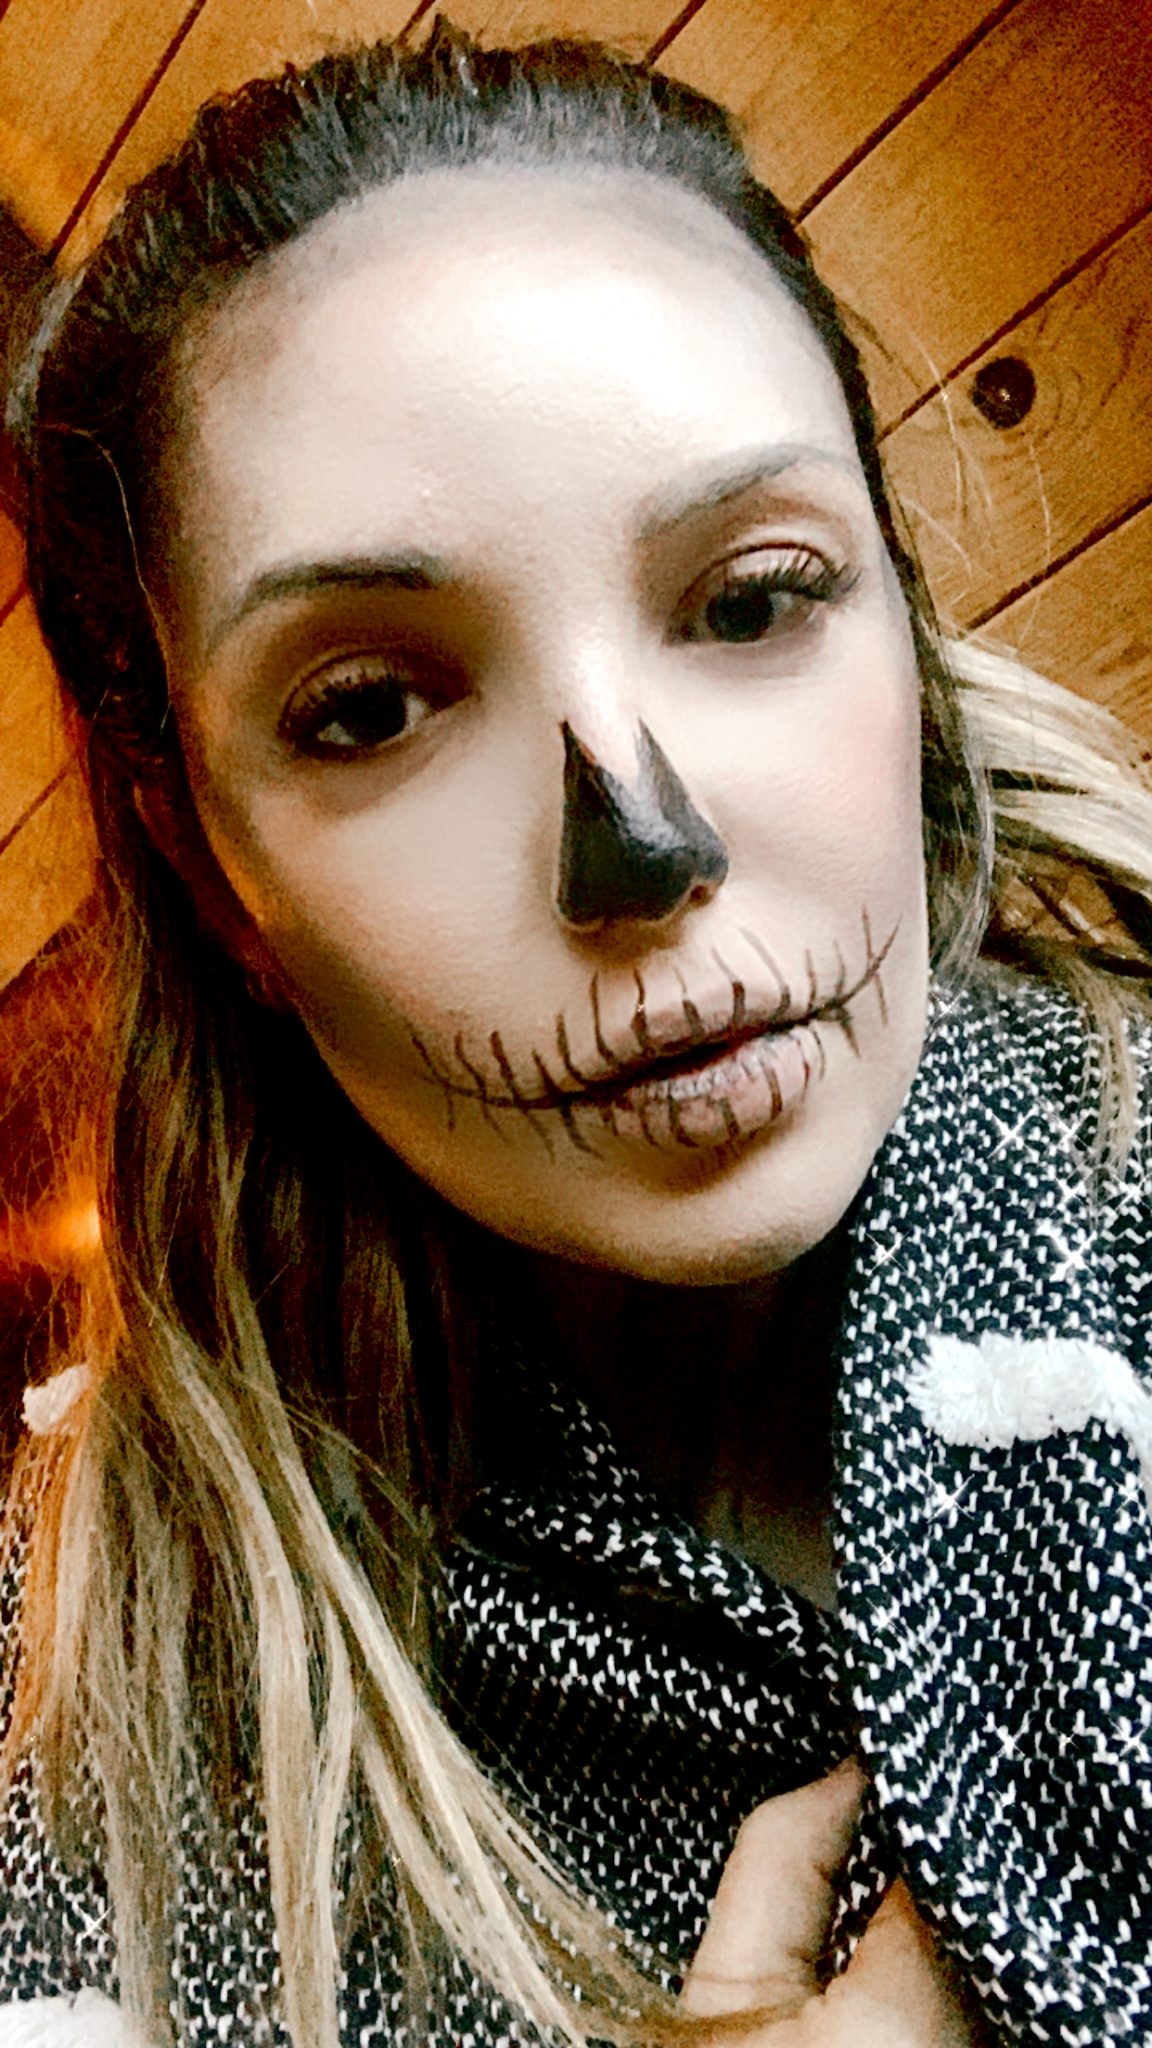 soft neutrals skeleton makeup | Skeleton Makeup Tutorial by popular San Francisco beauty blog, Just Add glam: image of a woman wearing skeleton makeup.